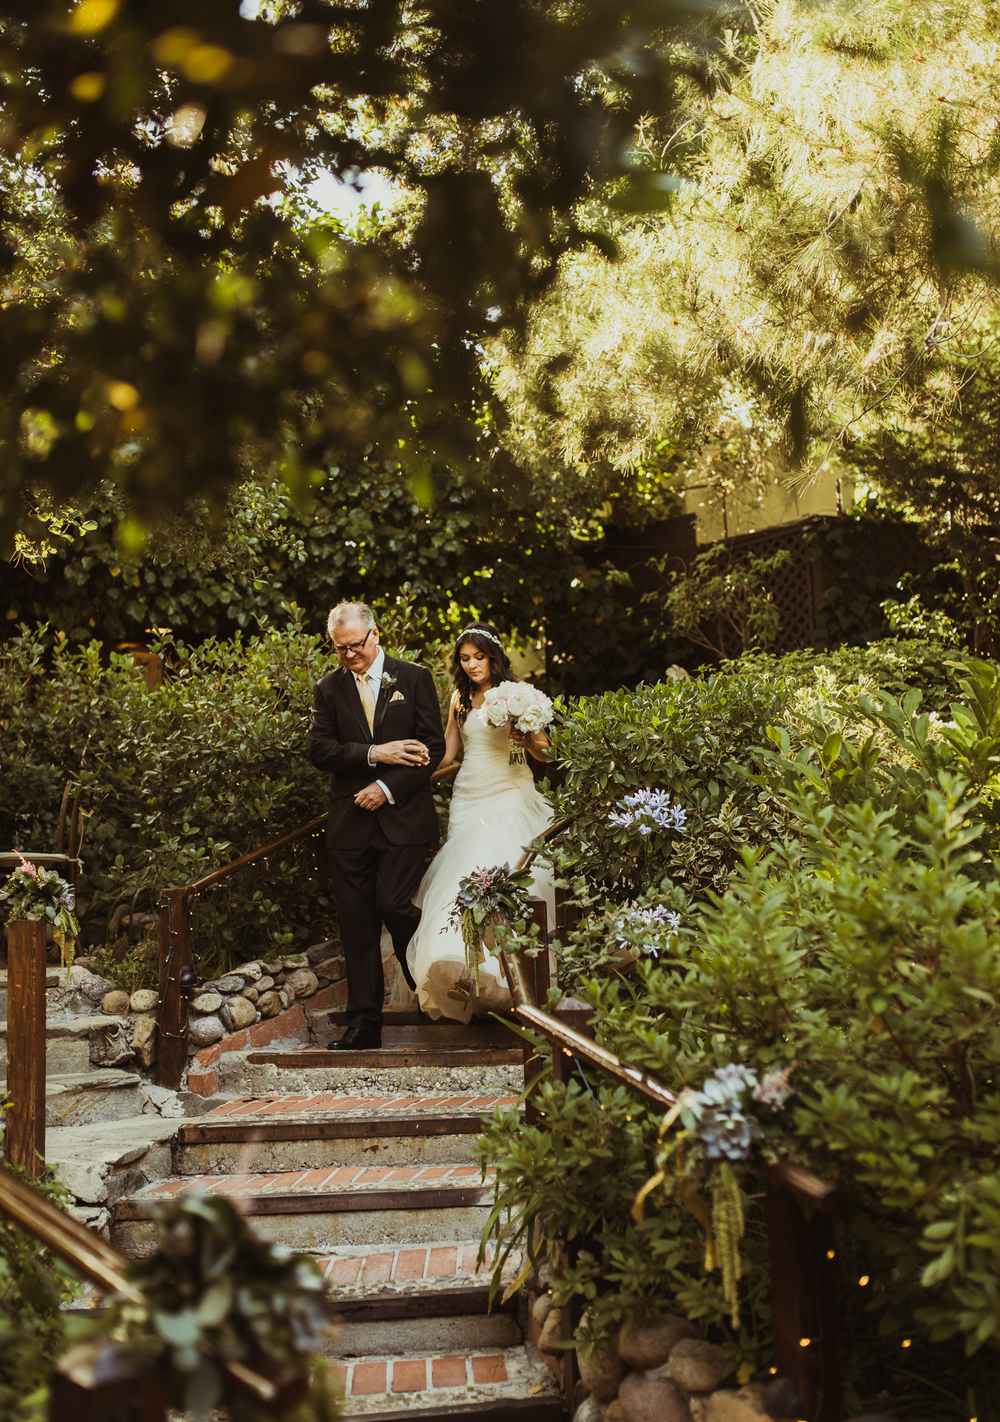 ©Isaiah & Taylor Photography - Inn of the Seventh Ray Wedding, Topanga Canyon California-75.jpg